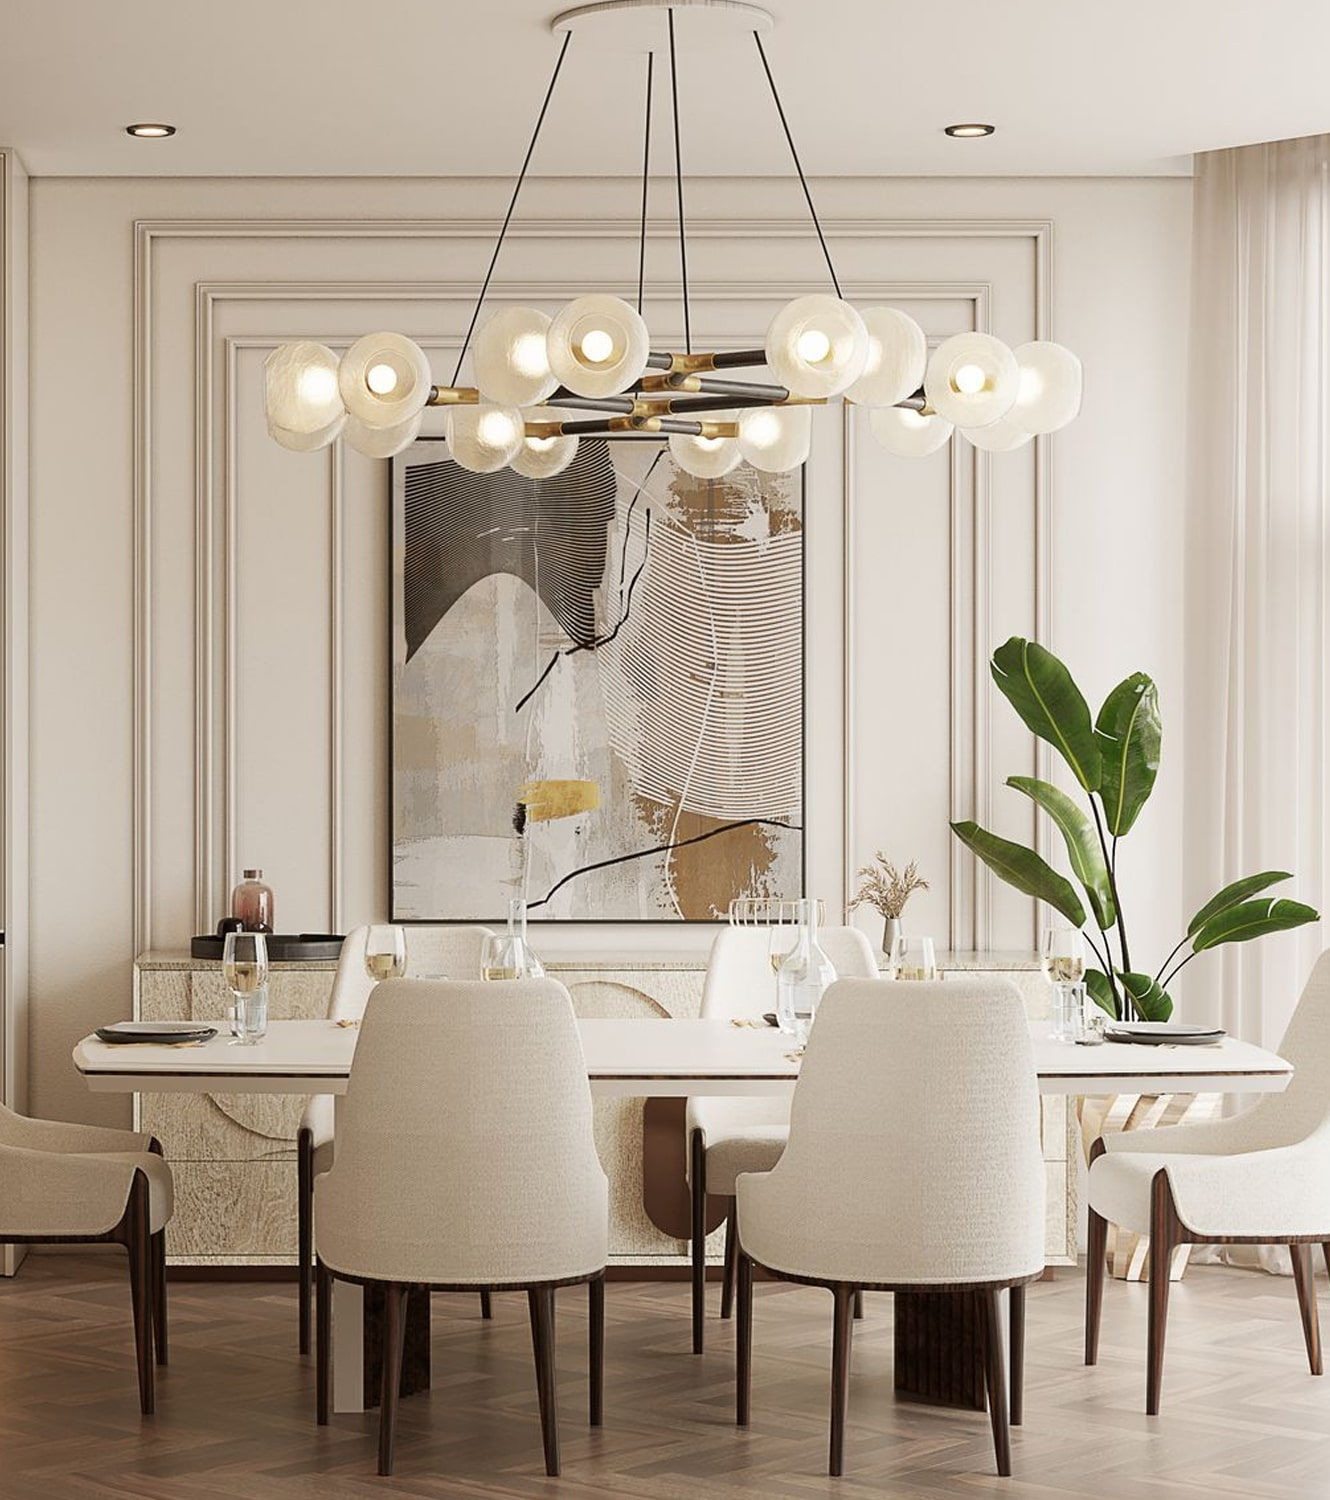 dining room - AN EXCEPTIONAL CONTEMPORARY MODERN 16 MILLION PENTHOUSE IN MONACO